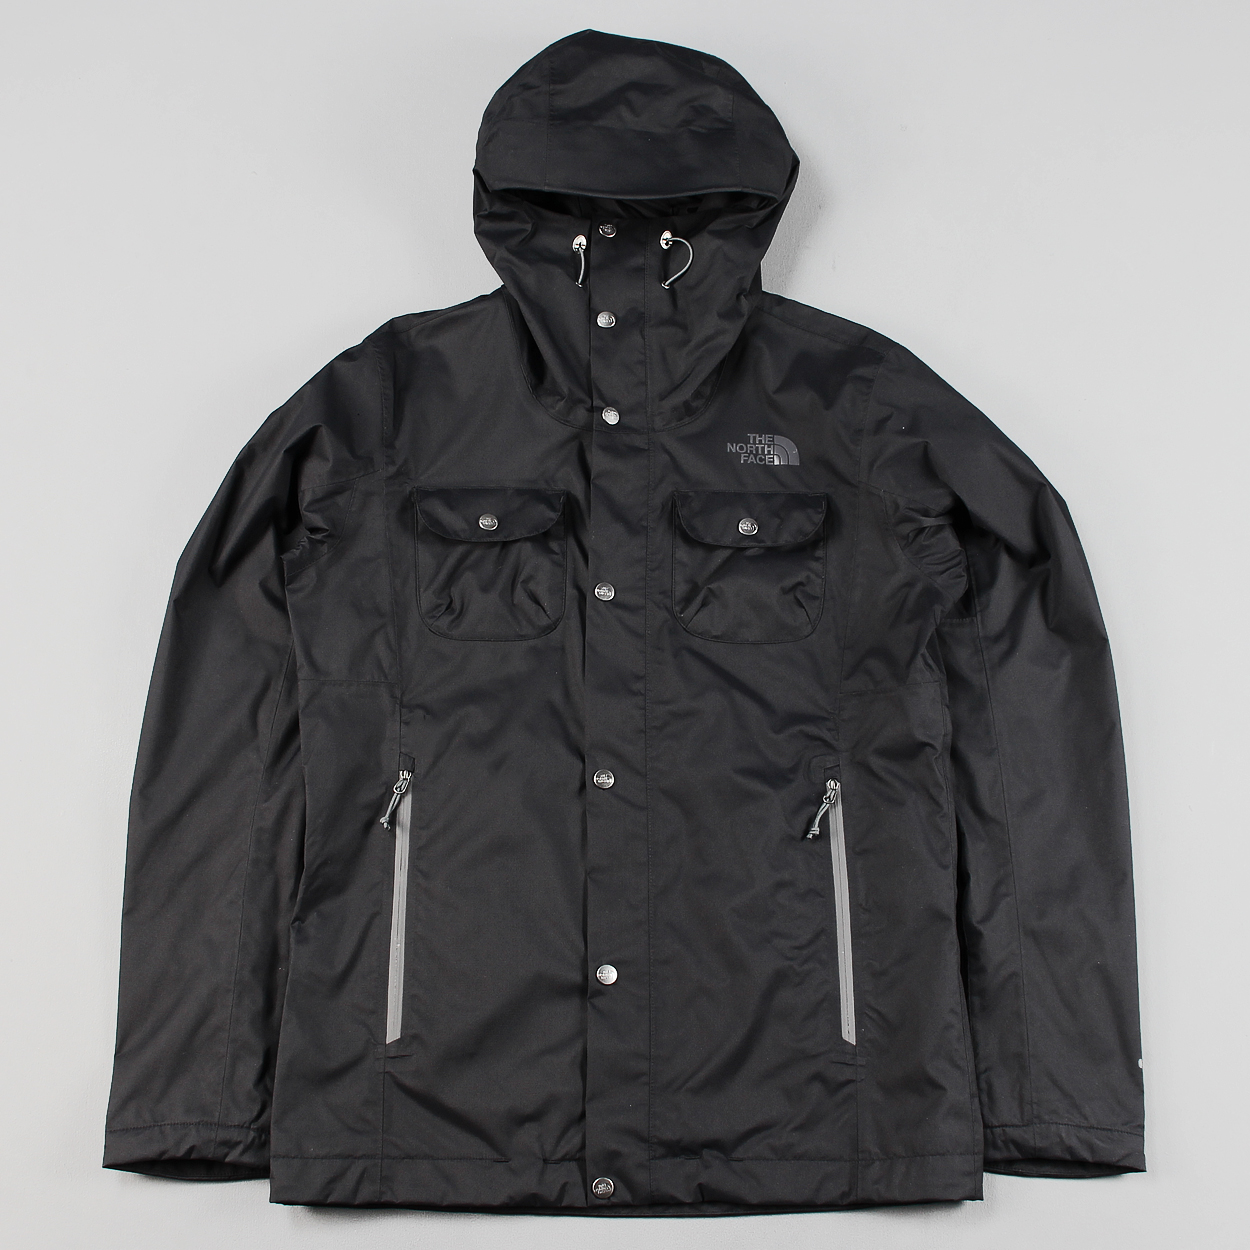 29bf20657d2e The North Face Mans Arrano waterproof jacket black coat £116.25